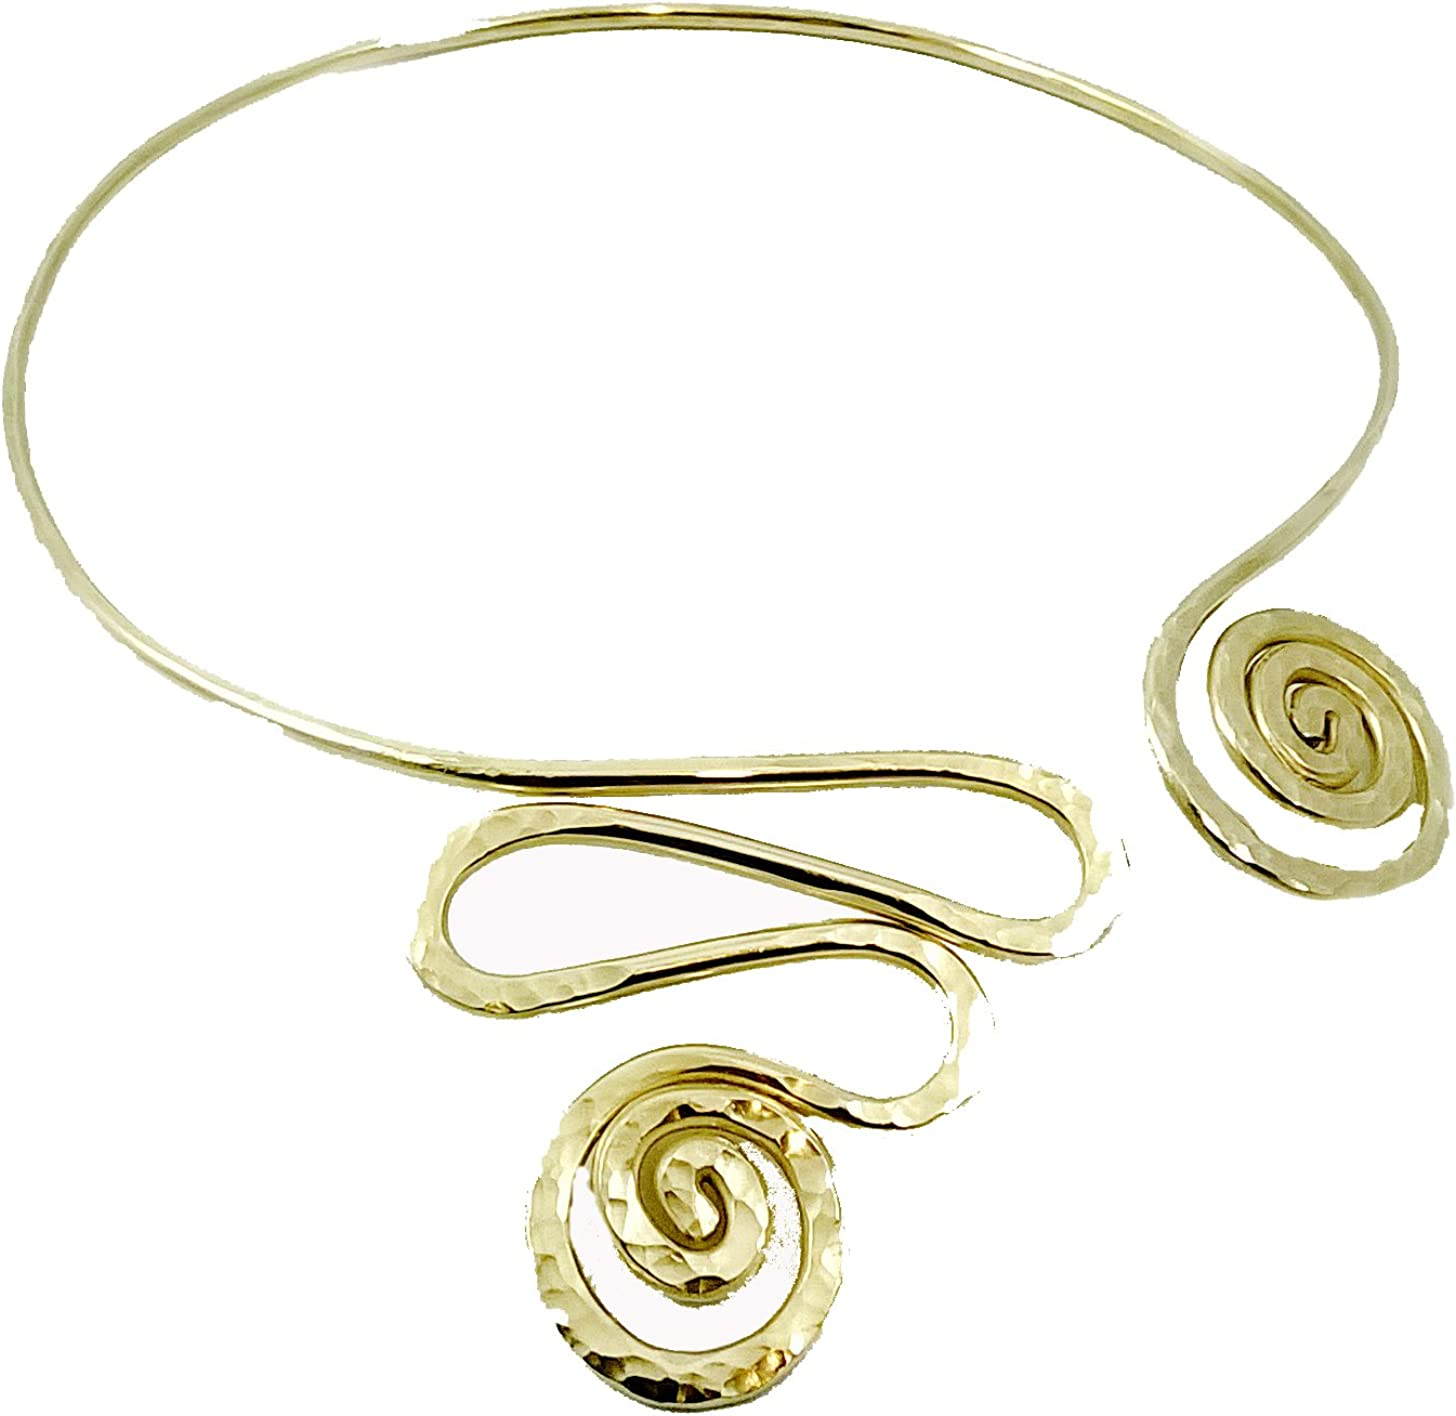 Elaments Design Solid Brass Chakra Collar Necklace Princess Spiral Design Fits Neck Sizes 15-17 Inches